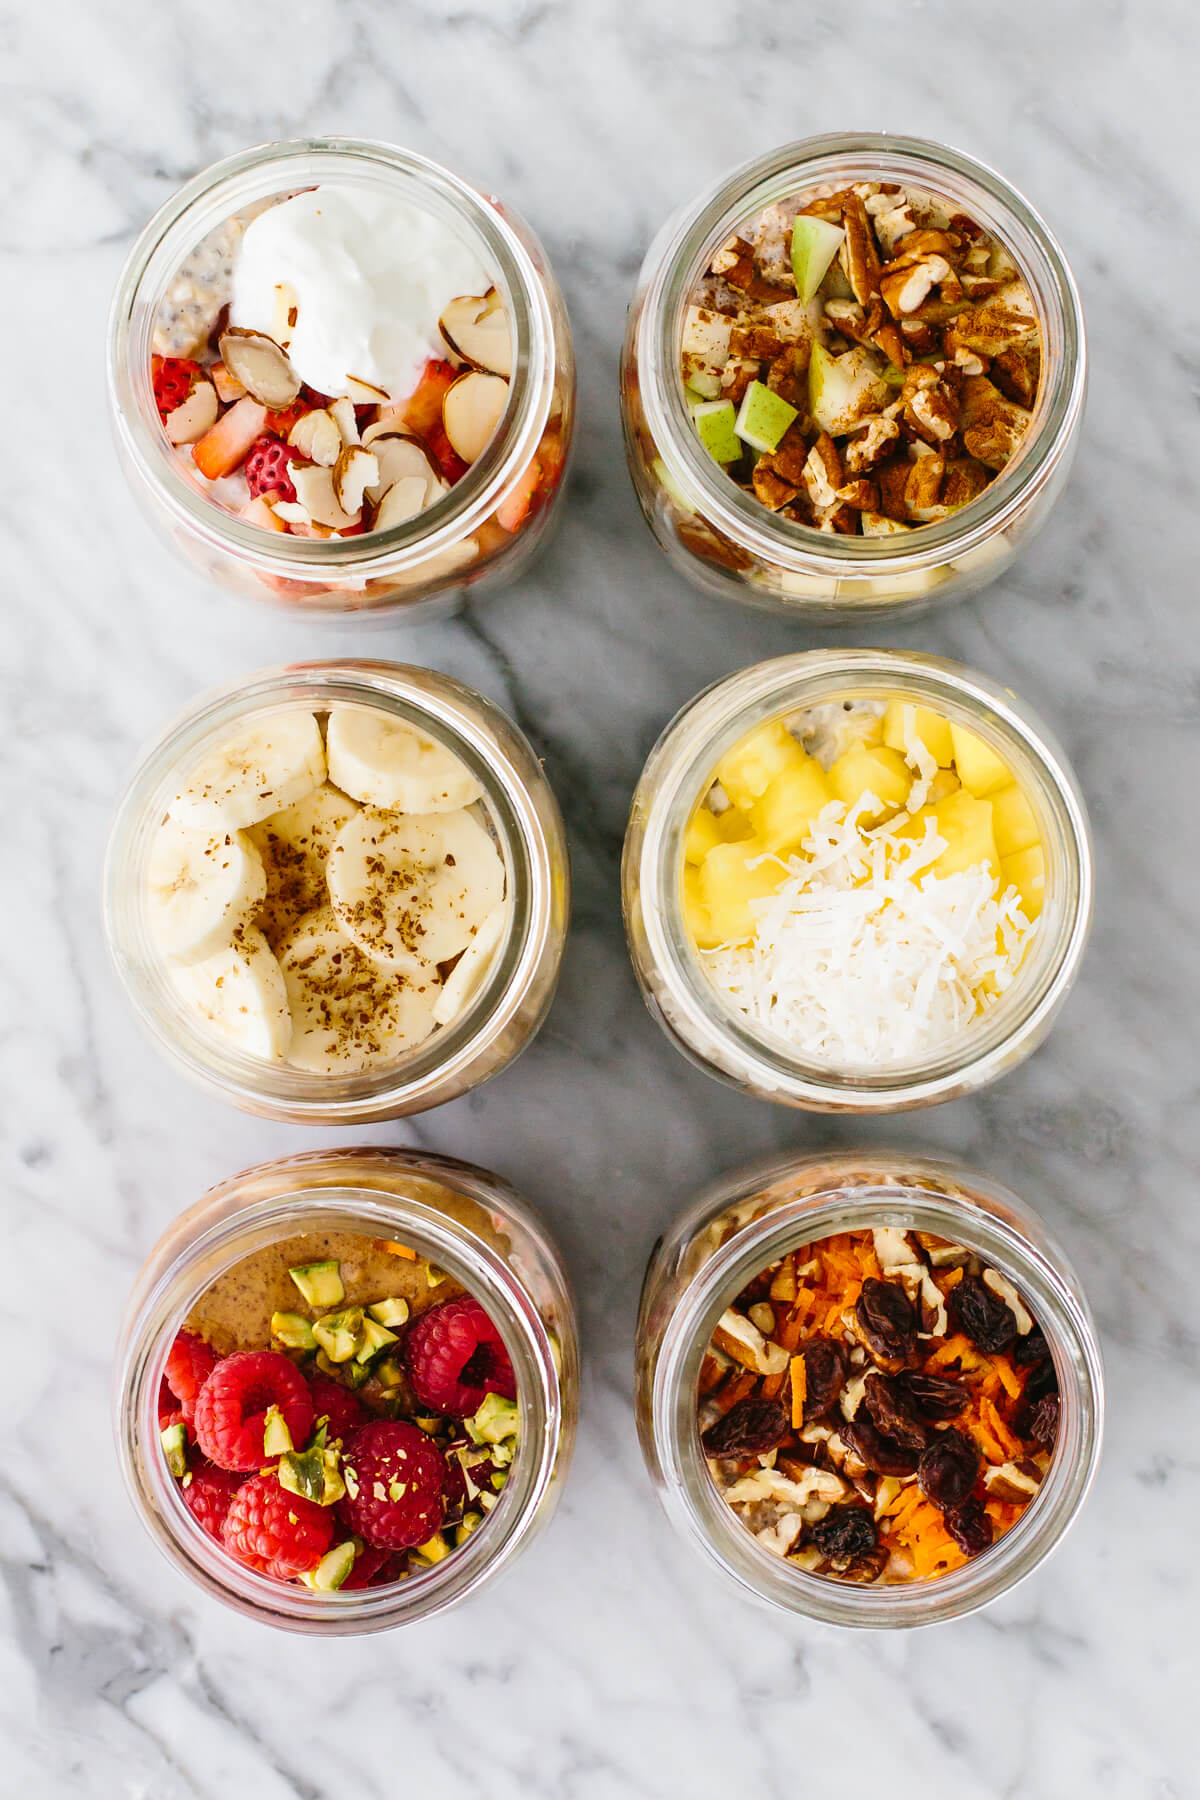 Overnight oats with different flavors in jars on a table.